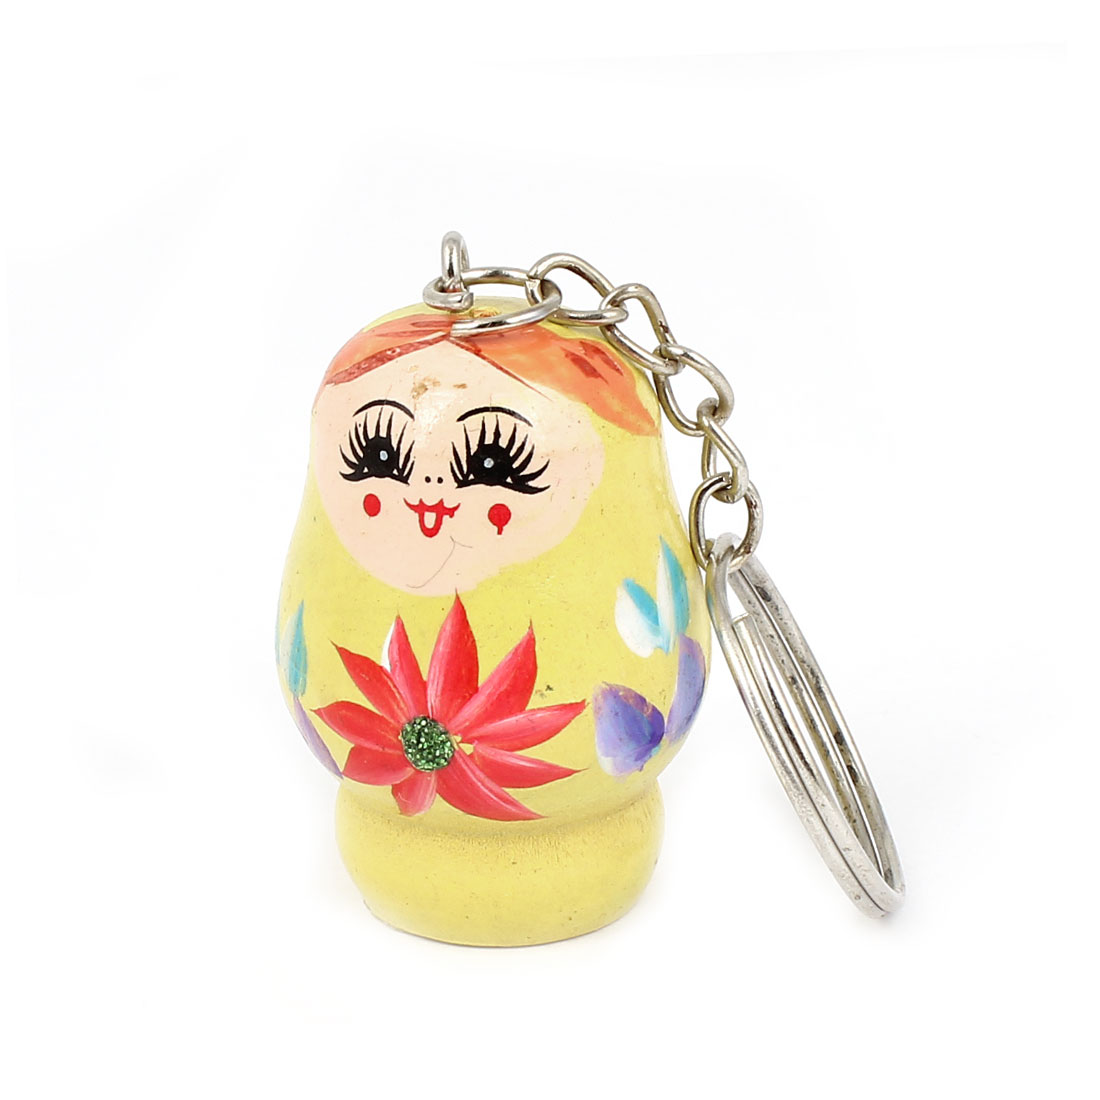 Unique Bargains Russian Nesting Doll Painted Wooden Hanging Pendant Keyring Yellow